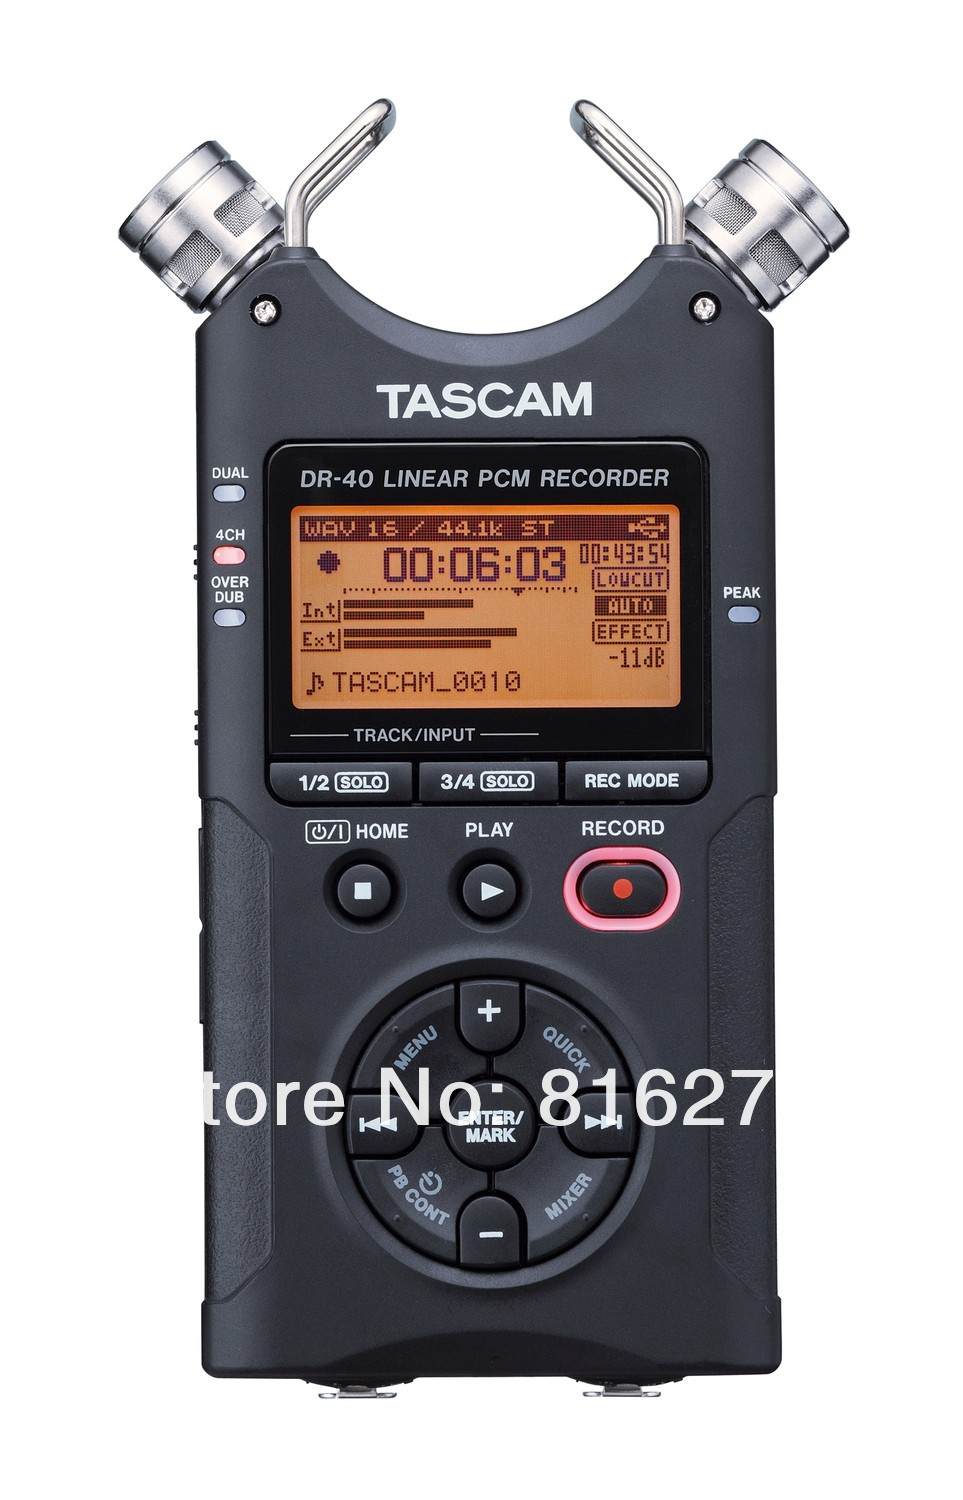 Hot selling Tascam dr 40 handheld digital voice recorder professional recording pen original brand Wholesale Promotions